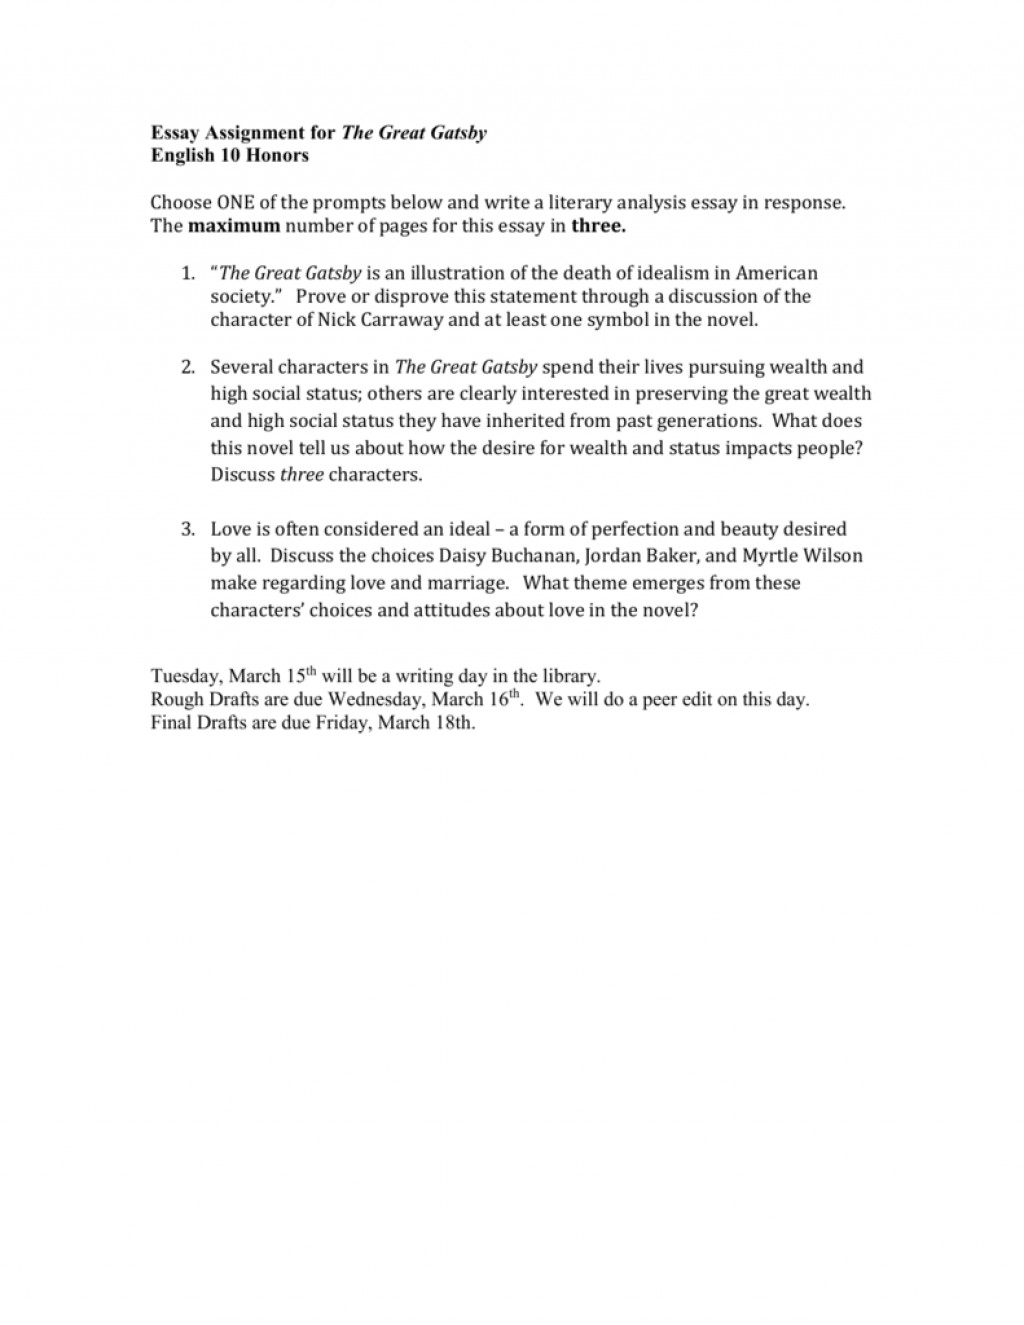 007 Gatsby Essay Example 008043914 1 Fascinating Higher English Great Plans Thesis Conclusion Large